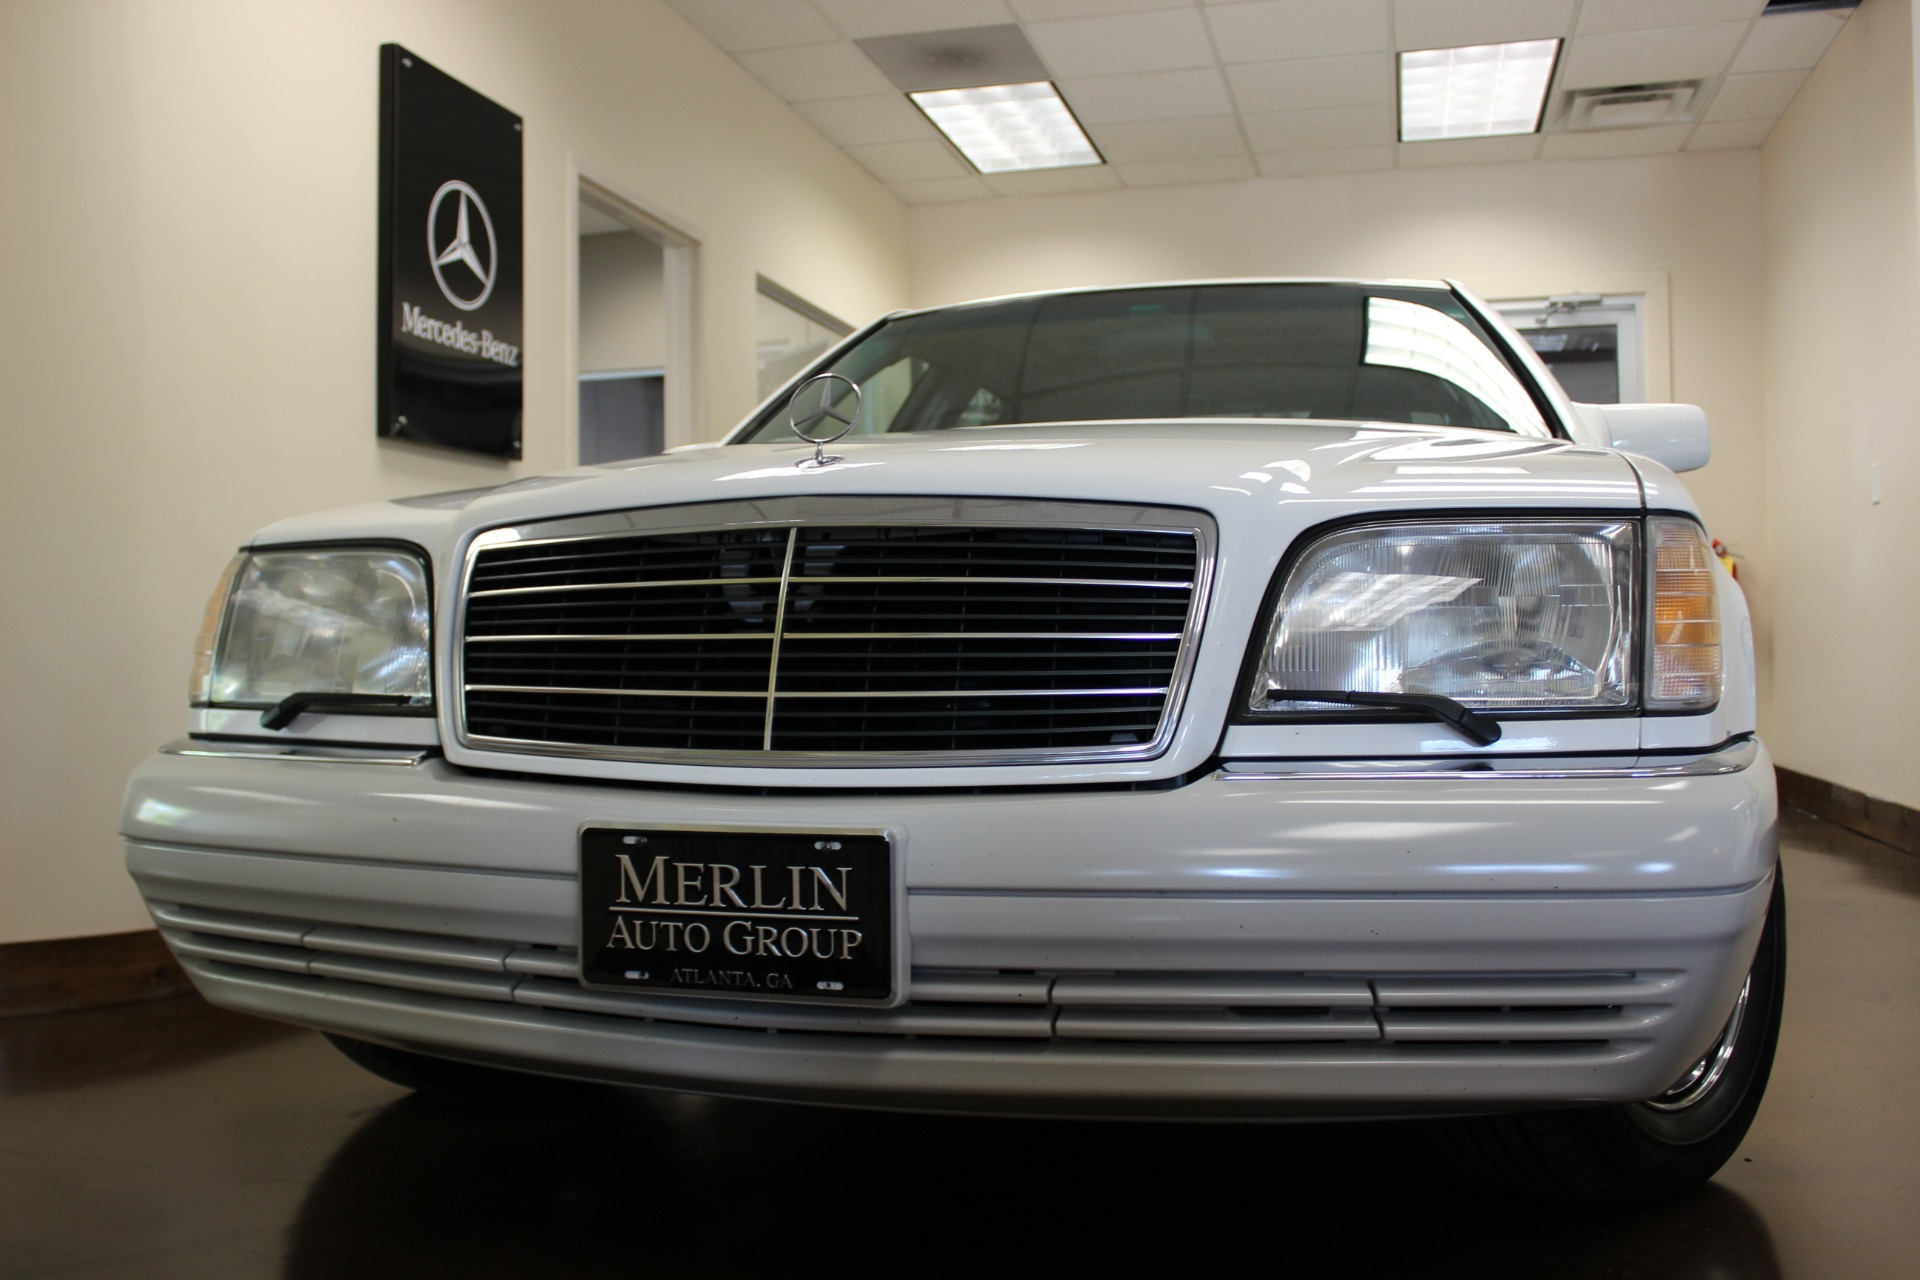 Used 1995 mercedes benz s class white sedan v8 a for White s550 mercedes benz for sale